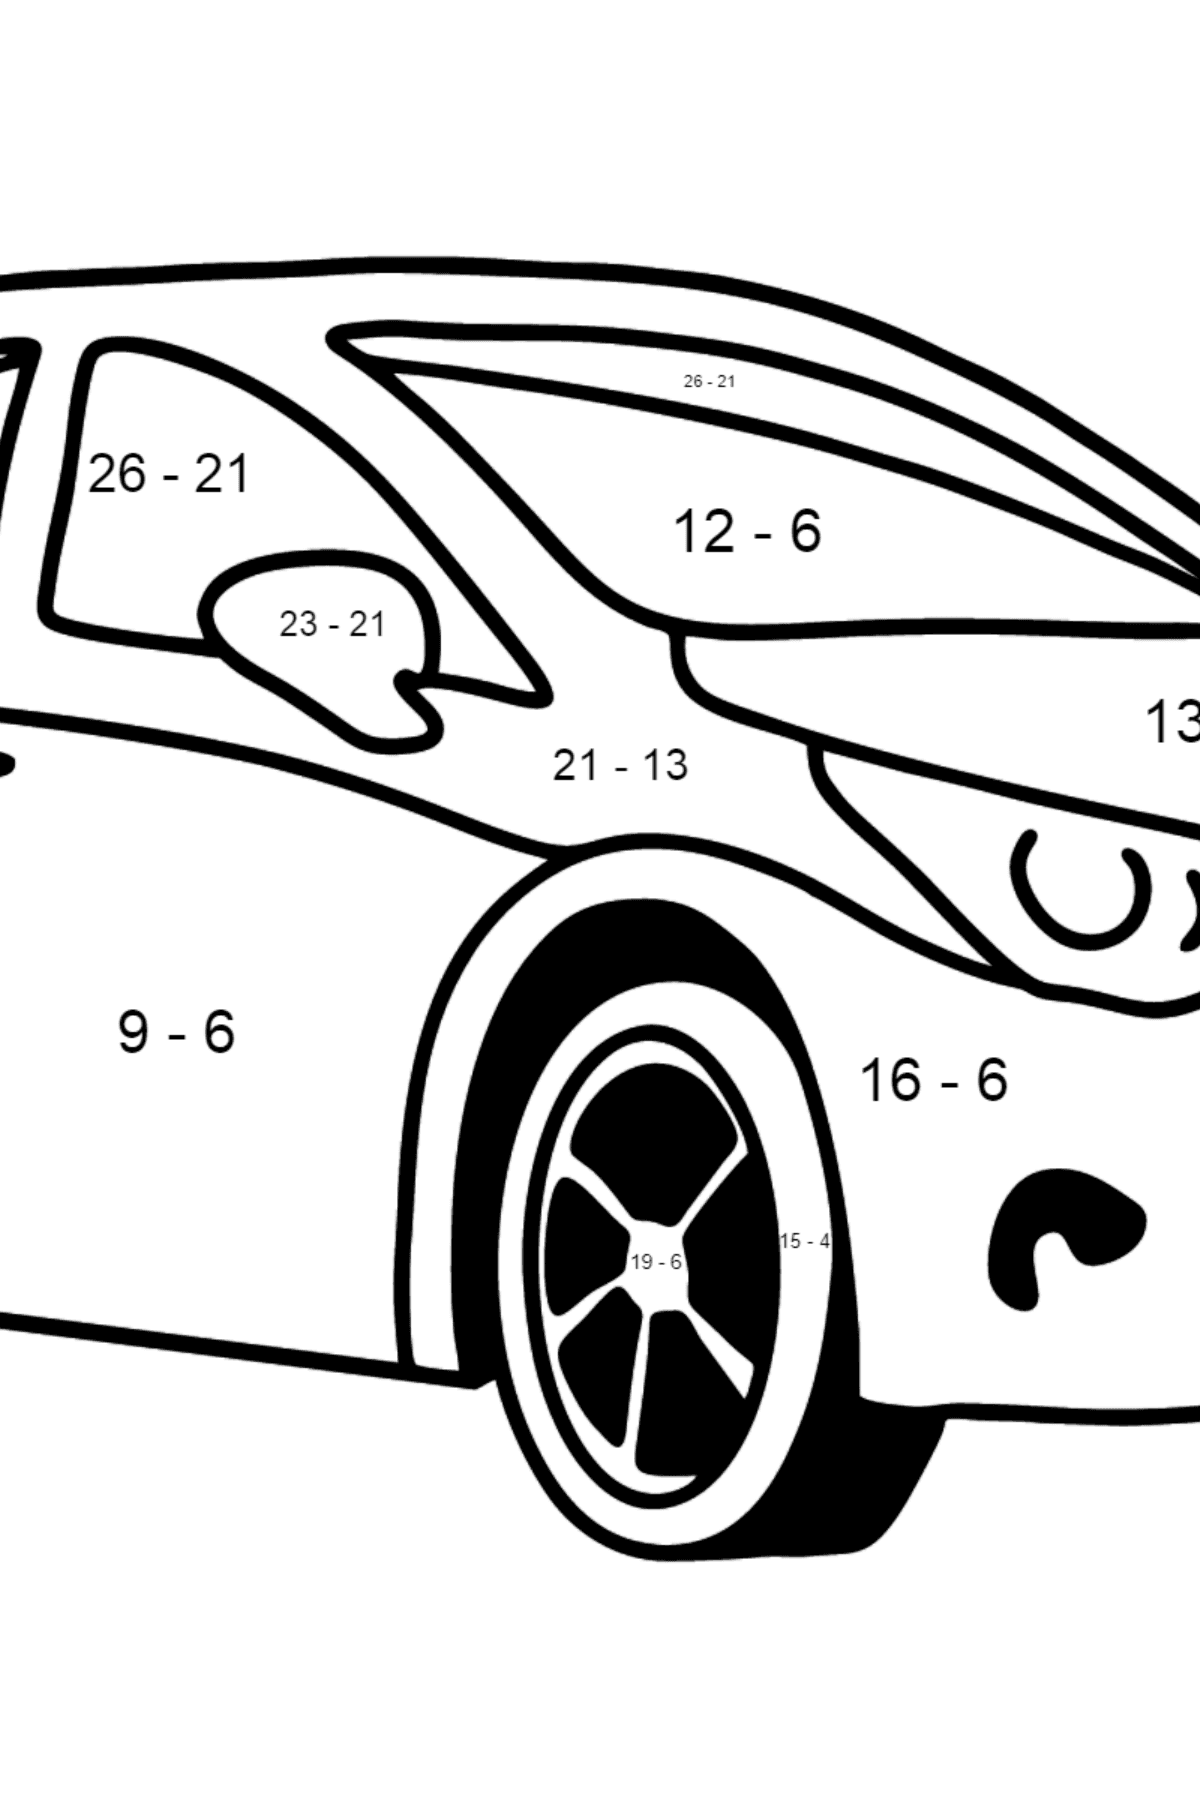 Toyota Avensis Car coloring page - Math Coloring - Subtraction for Kids